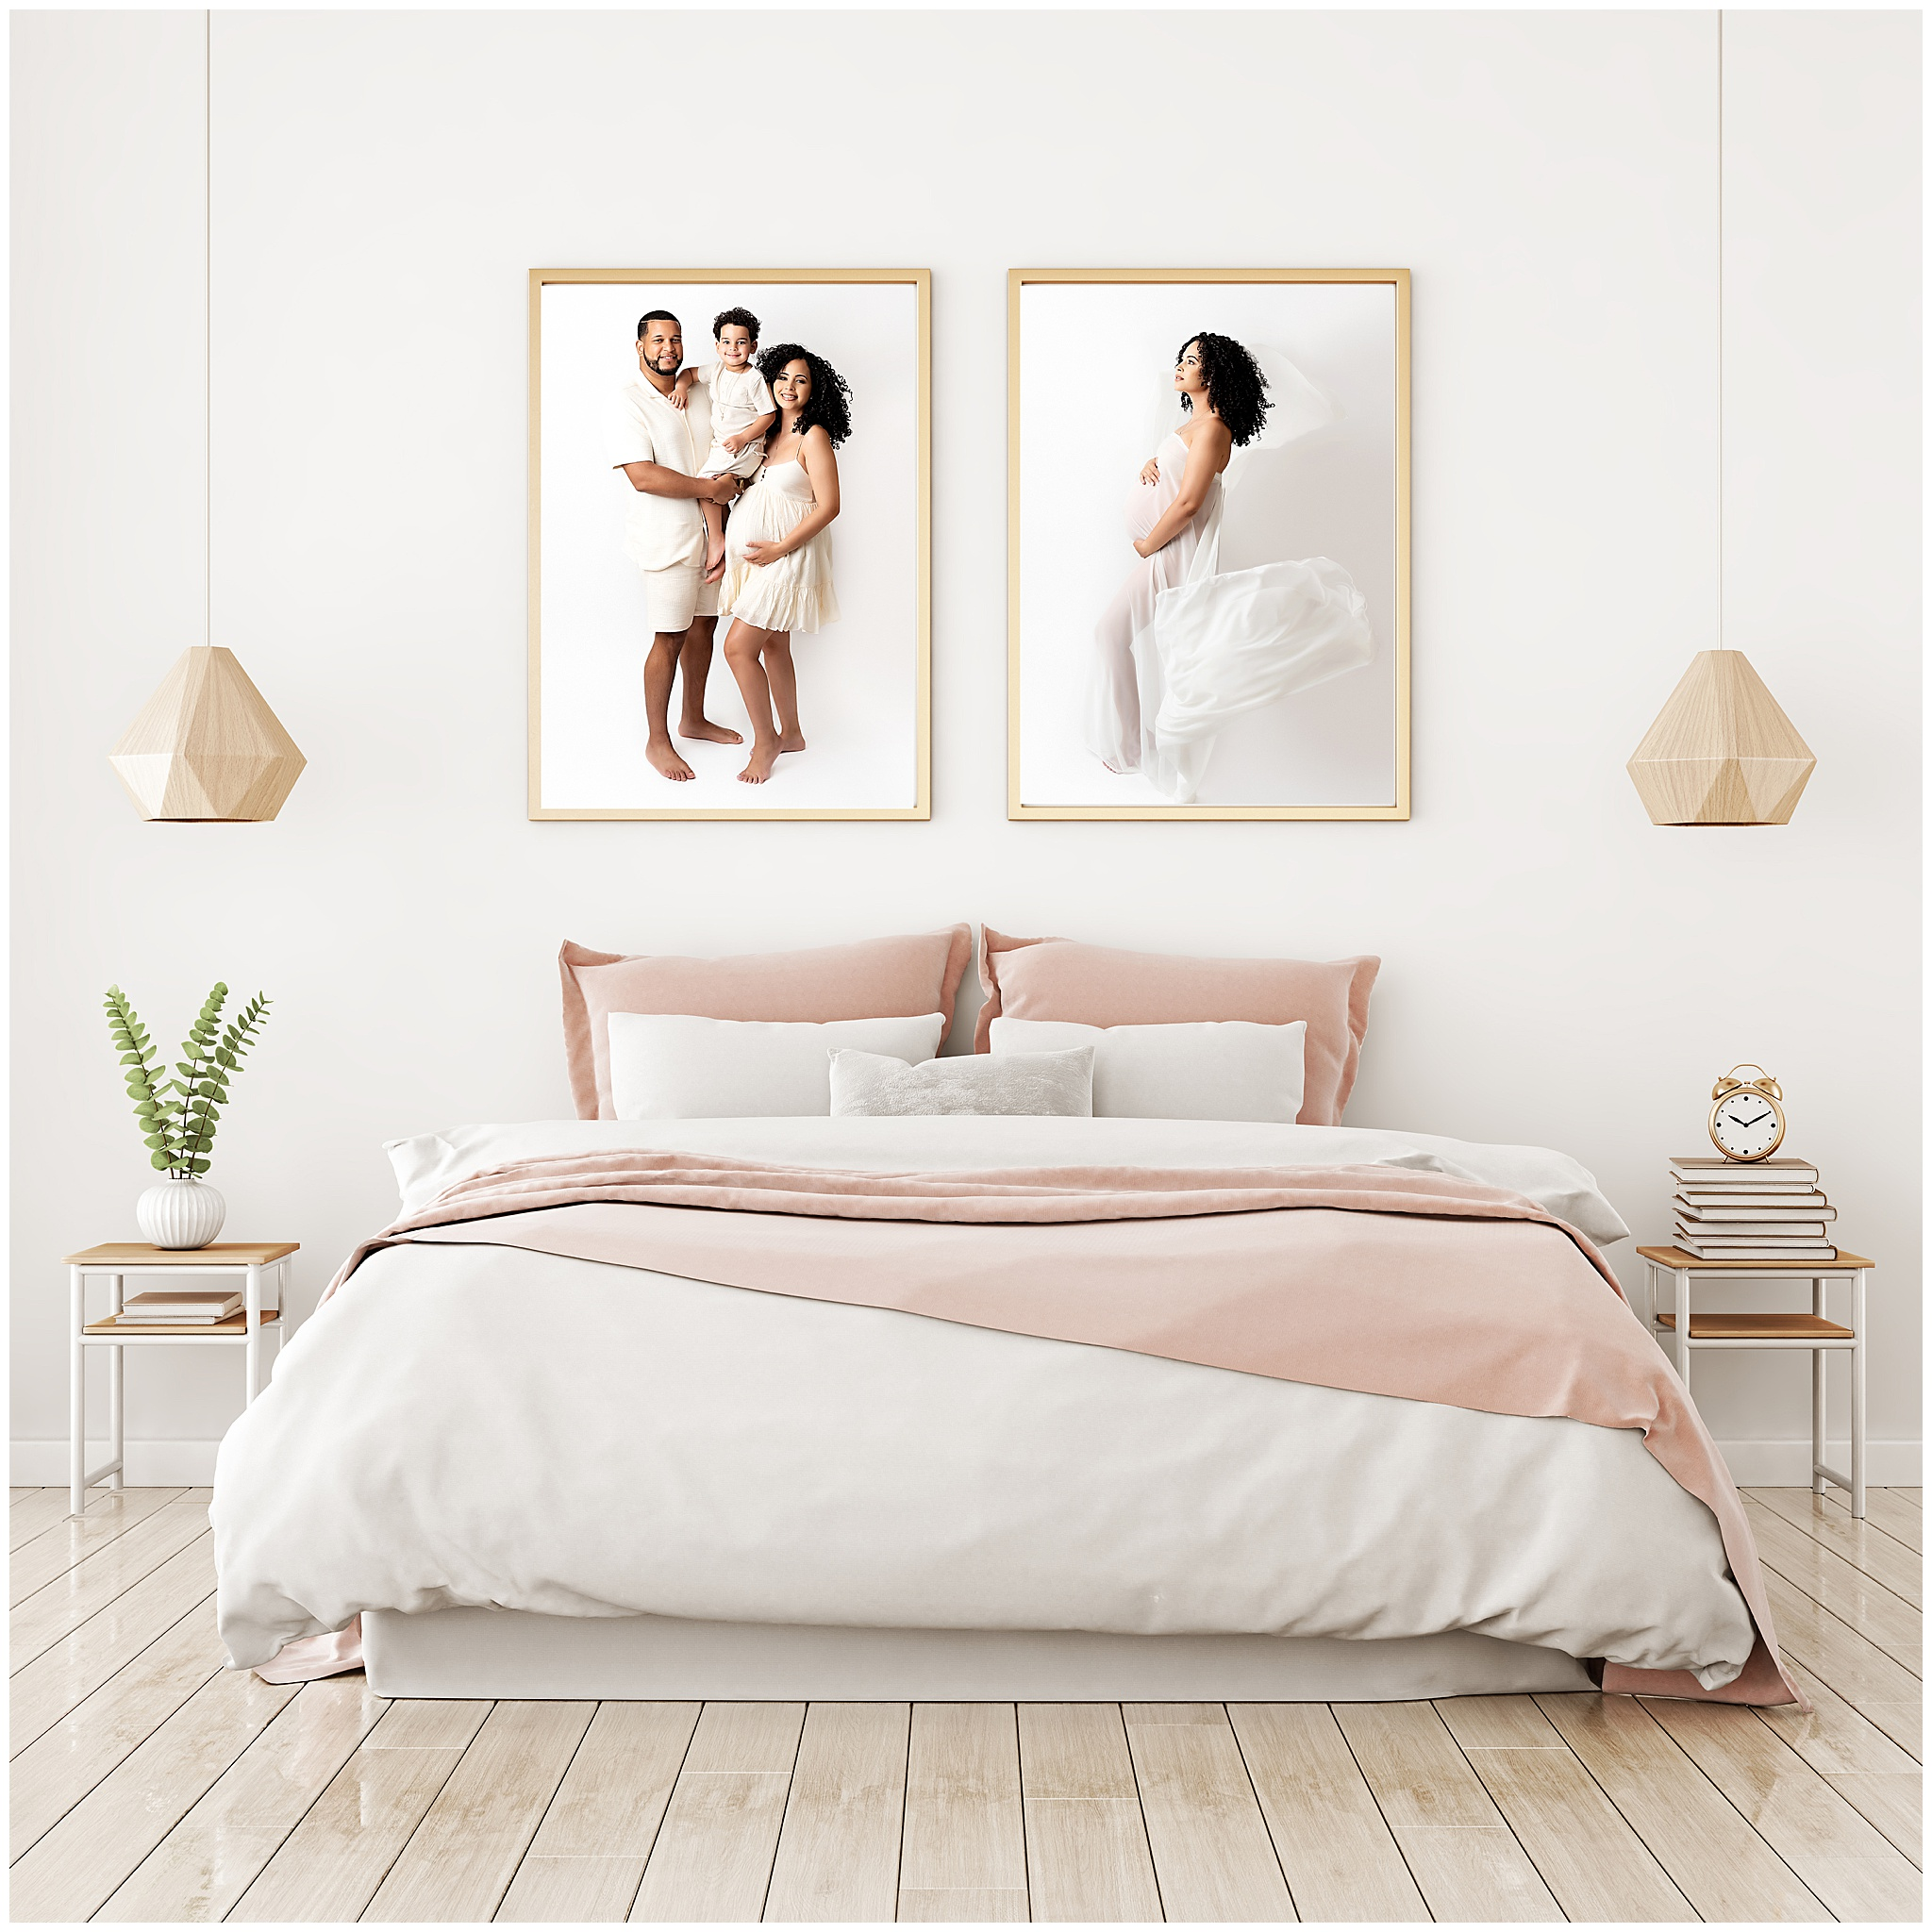 Maternity family session wall art display